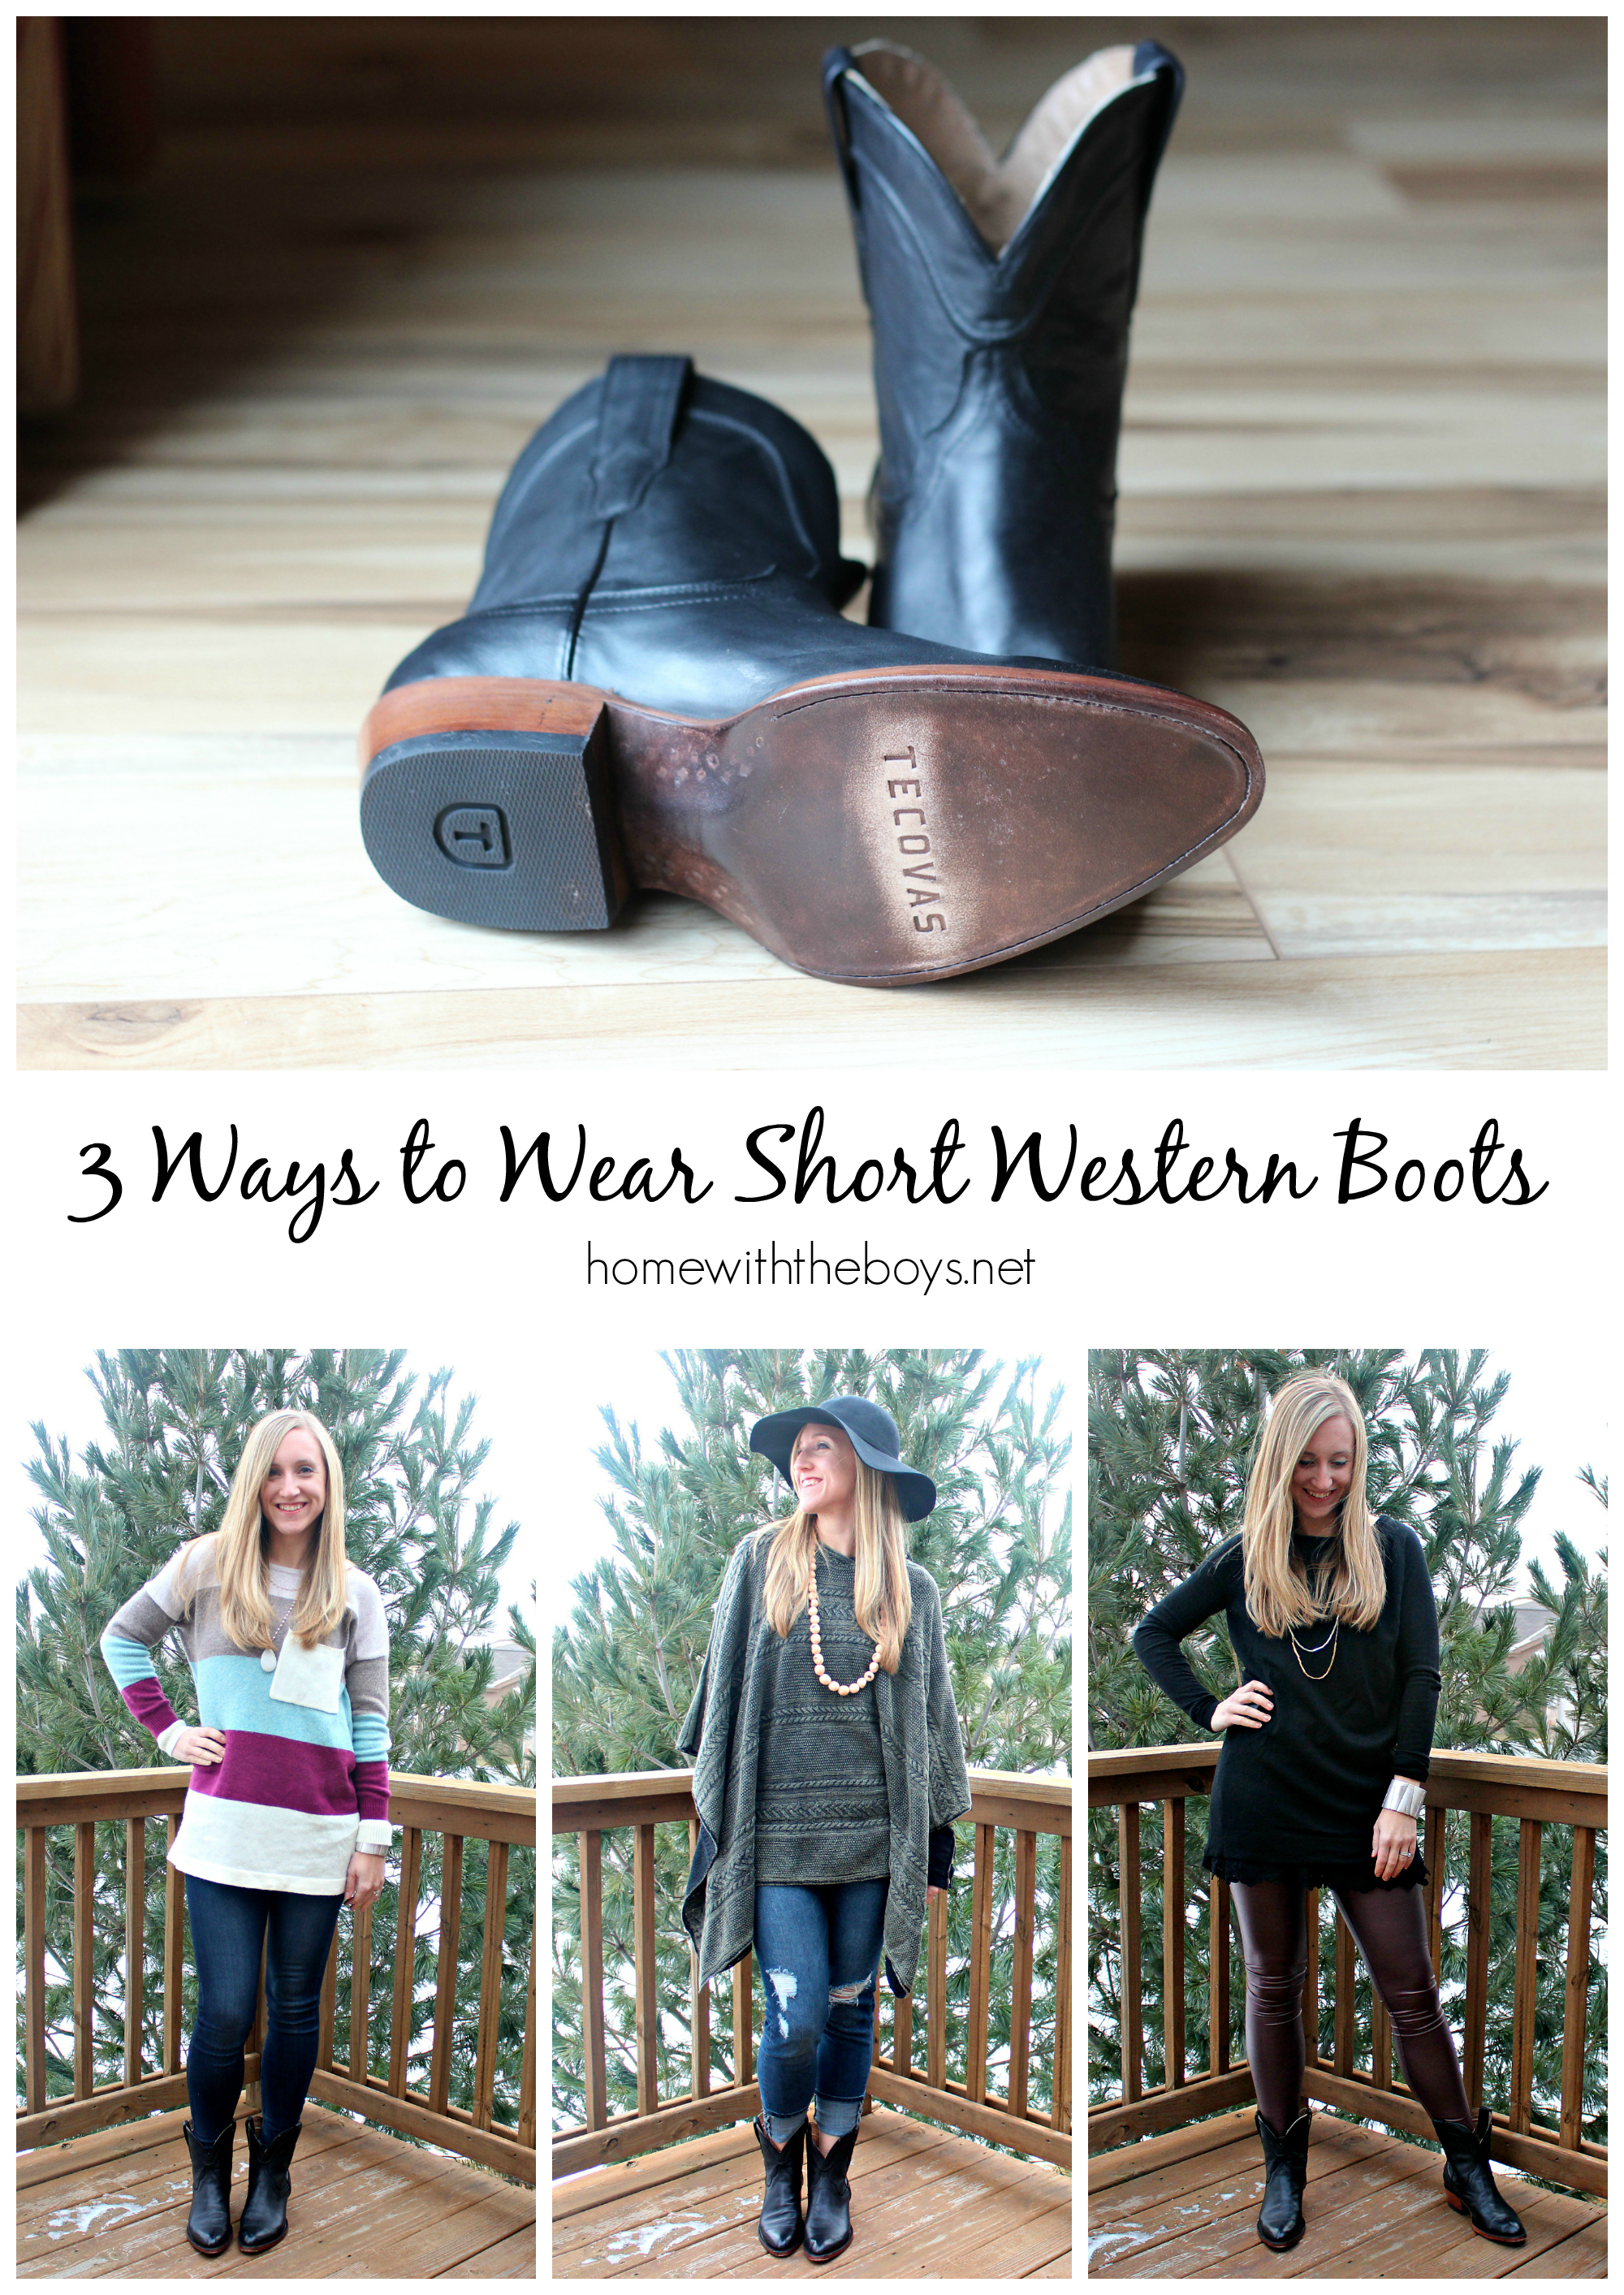 3 Ways to Wear Short Western Boots